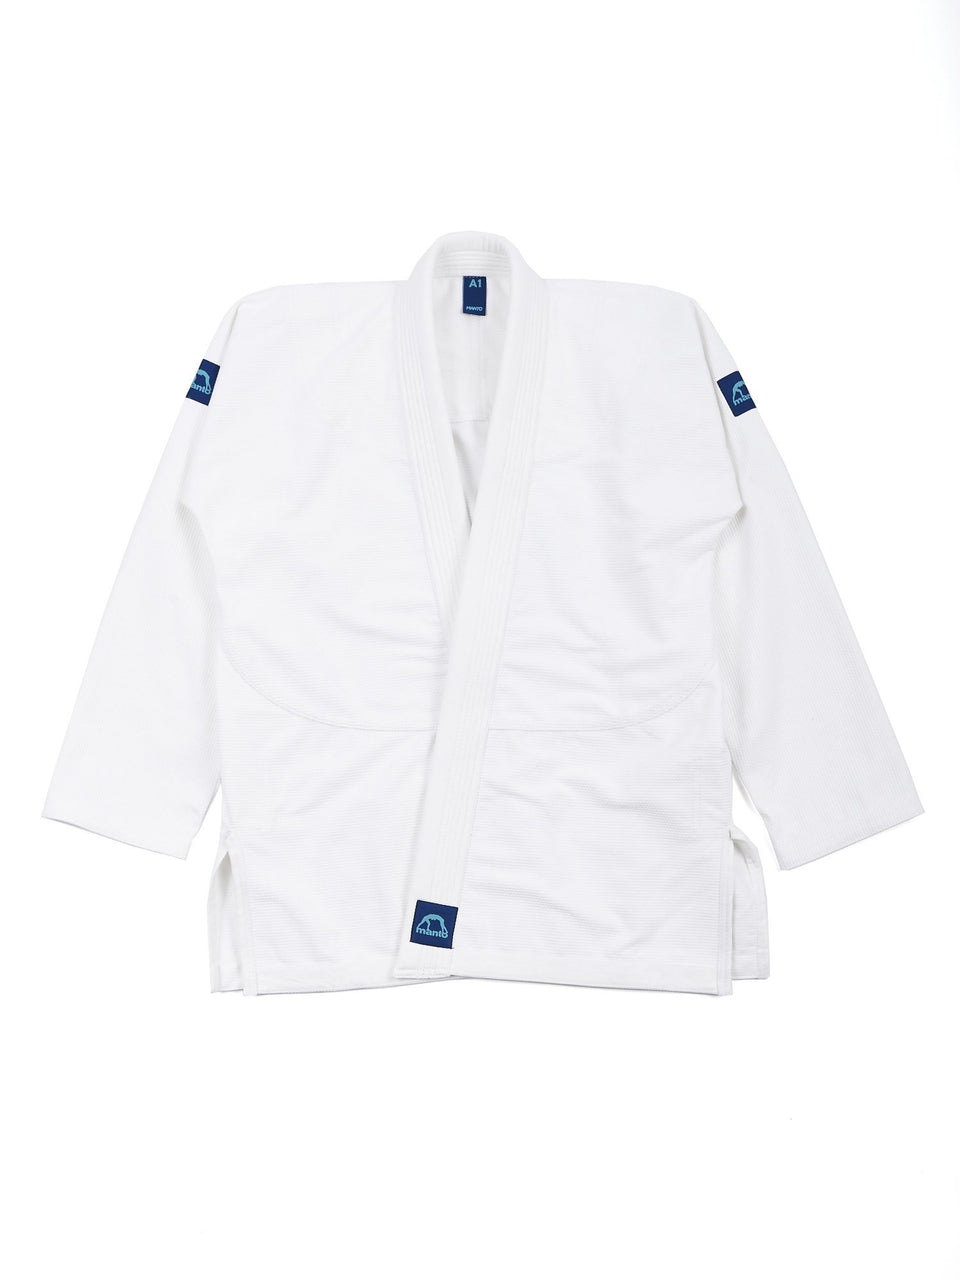 Manto Base 2.0 BJJ Gi